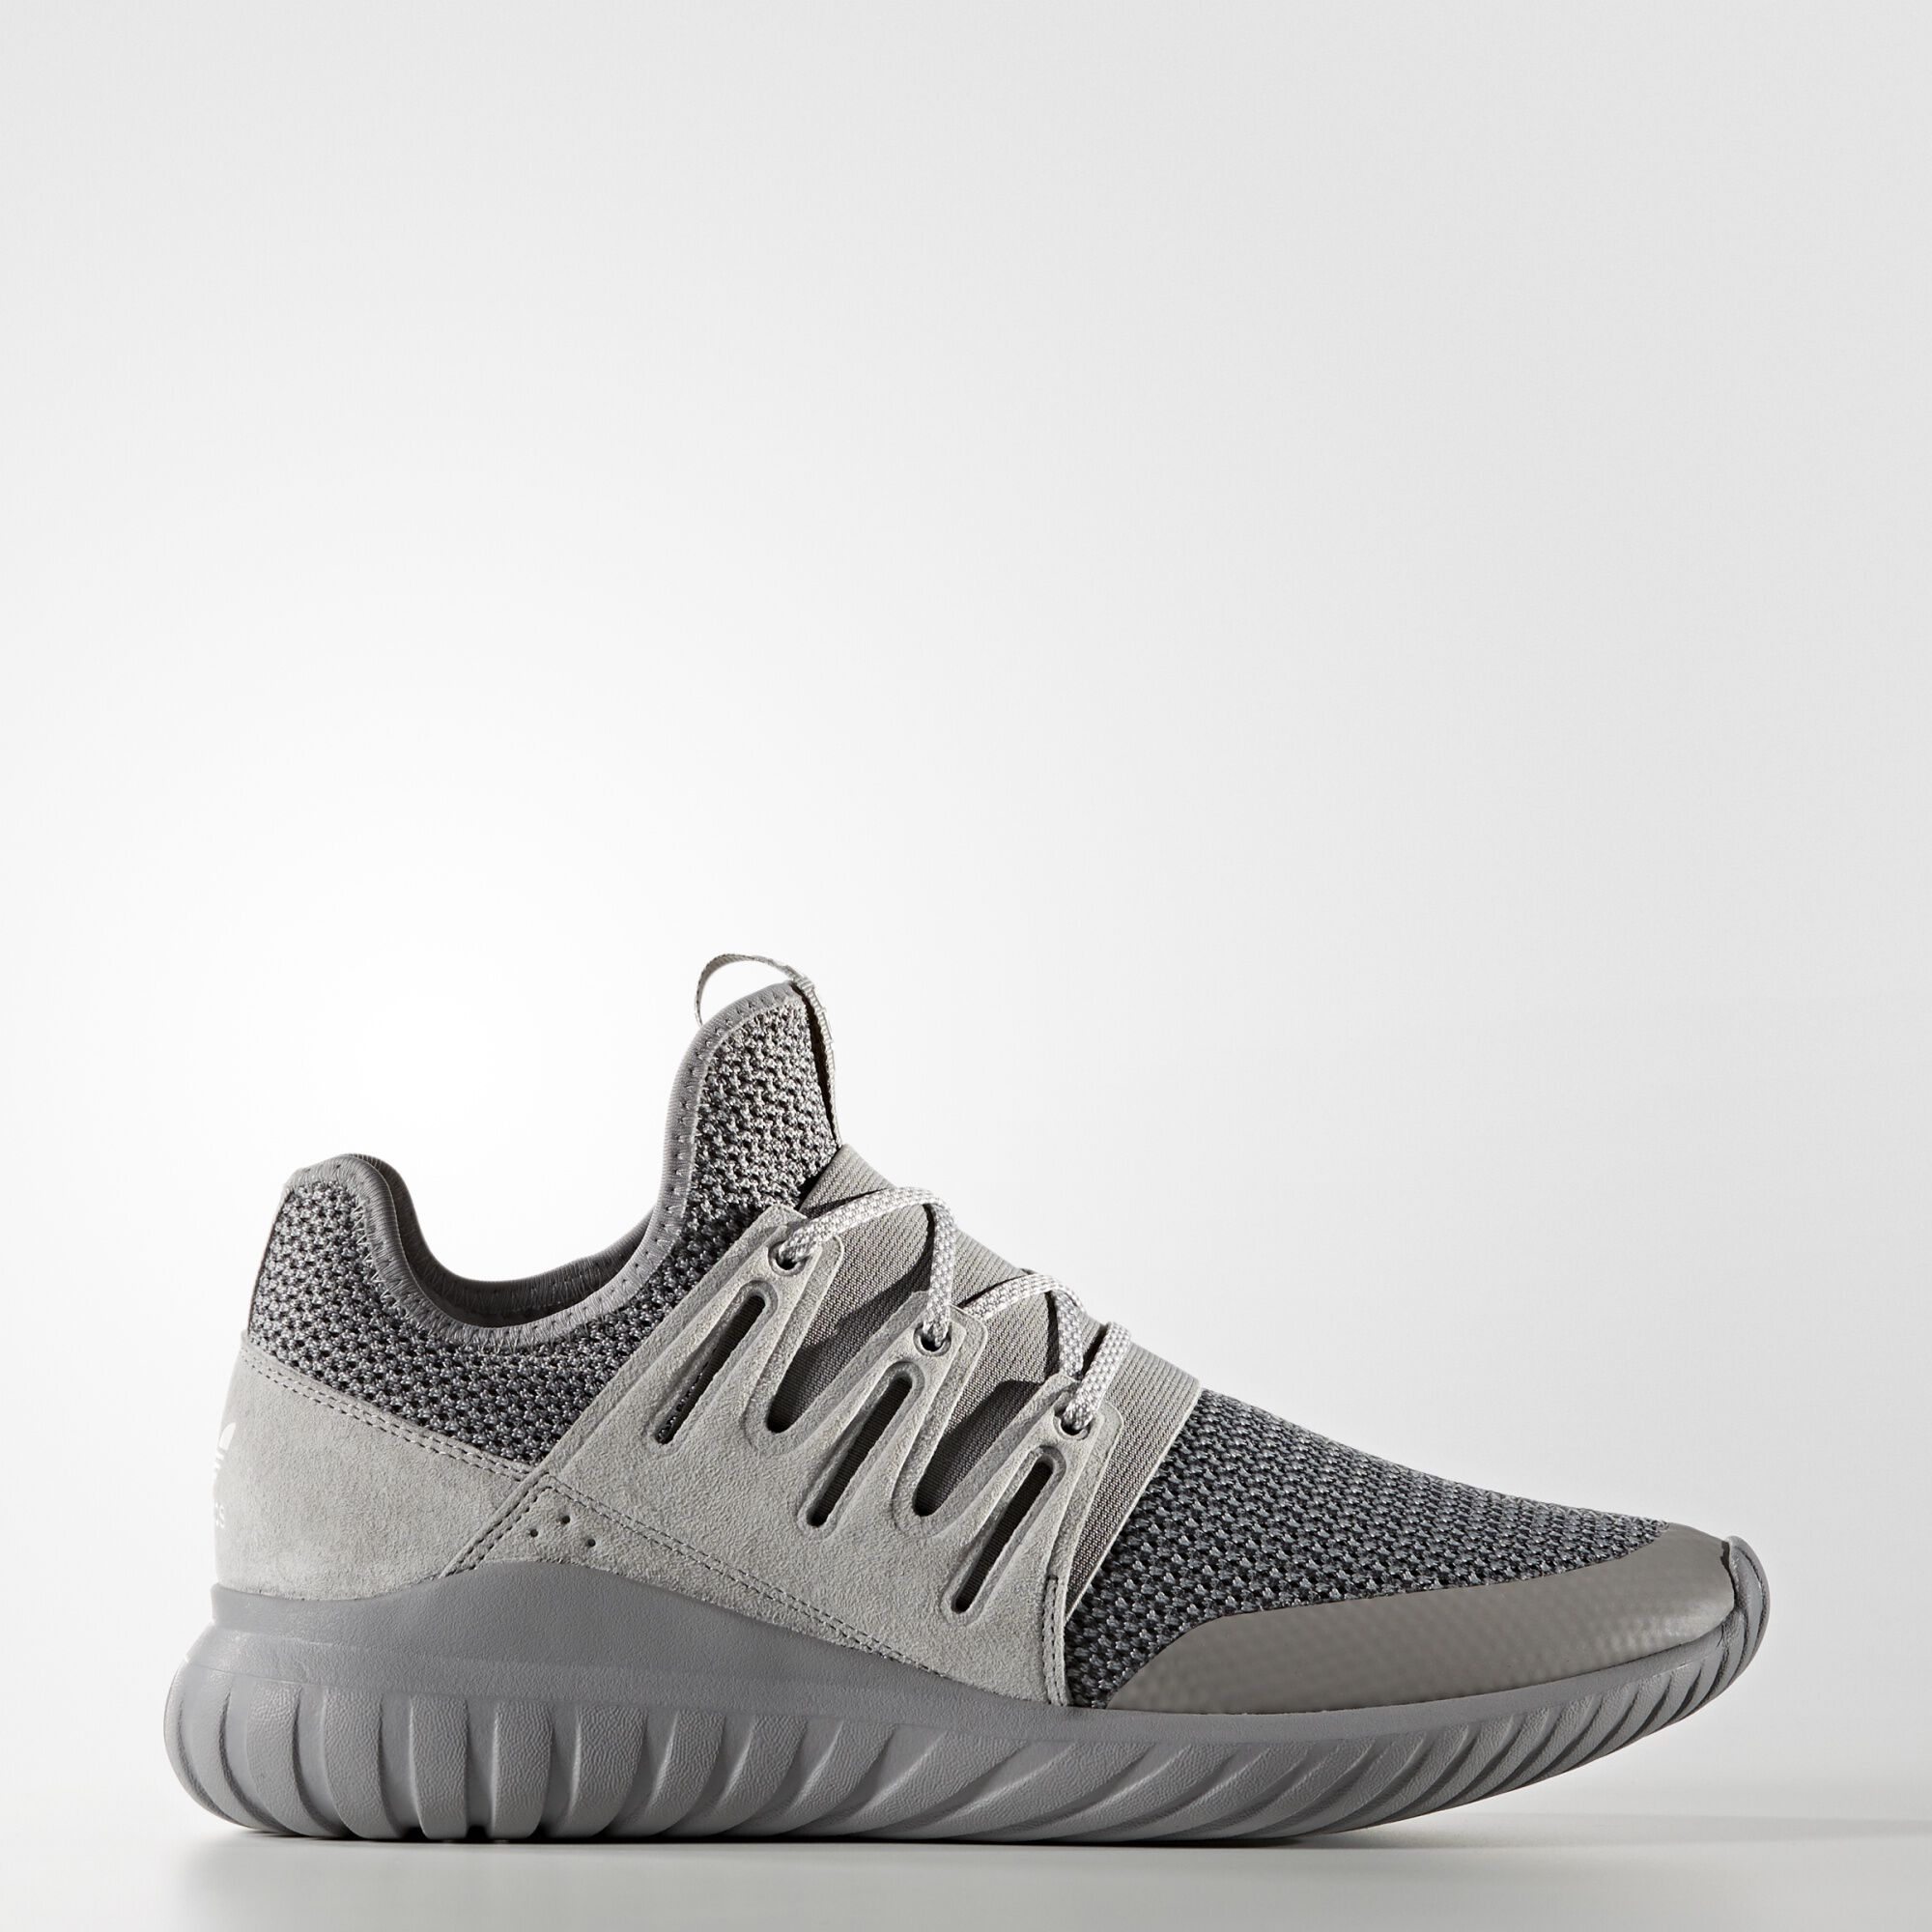 20% off Adidas Shoes Adidas Tubular shoes from Hannah '